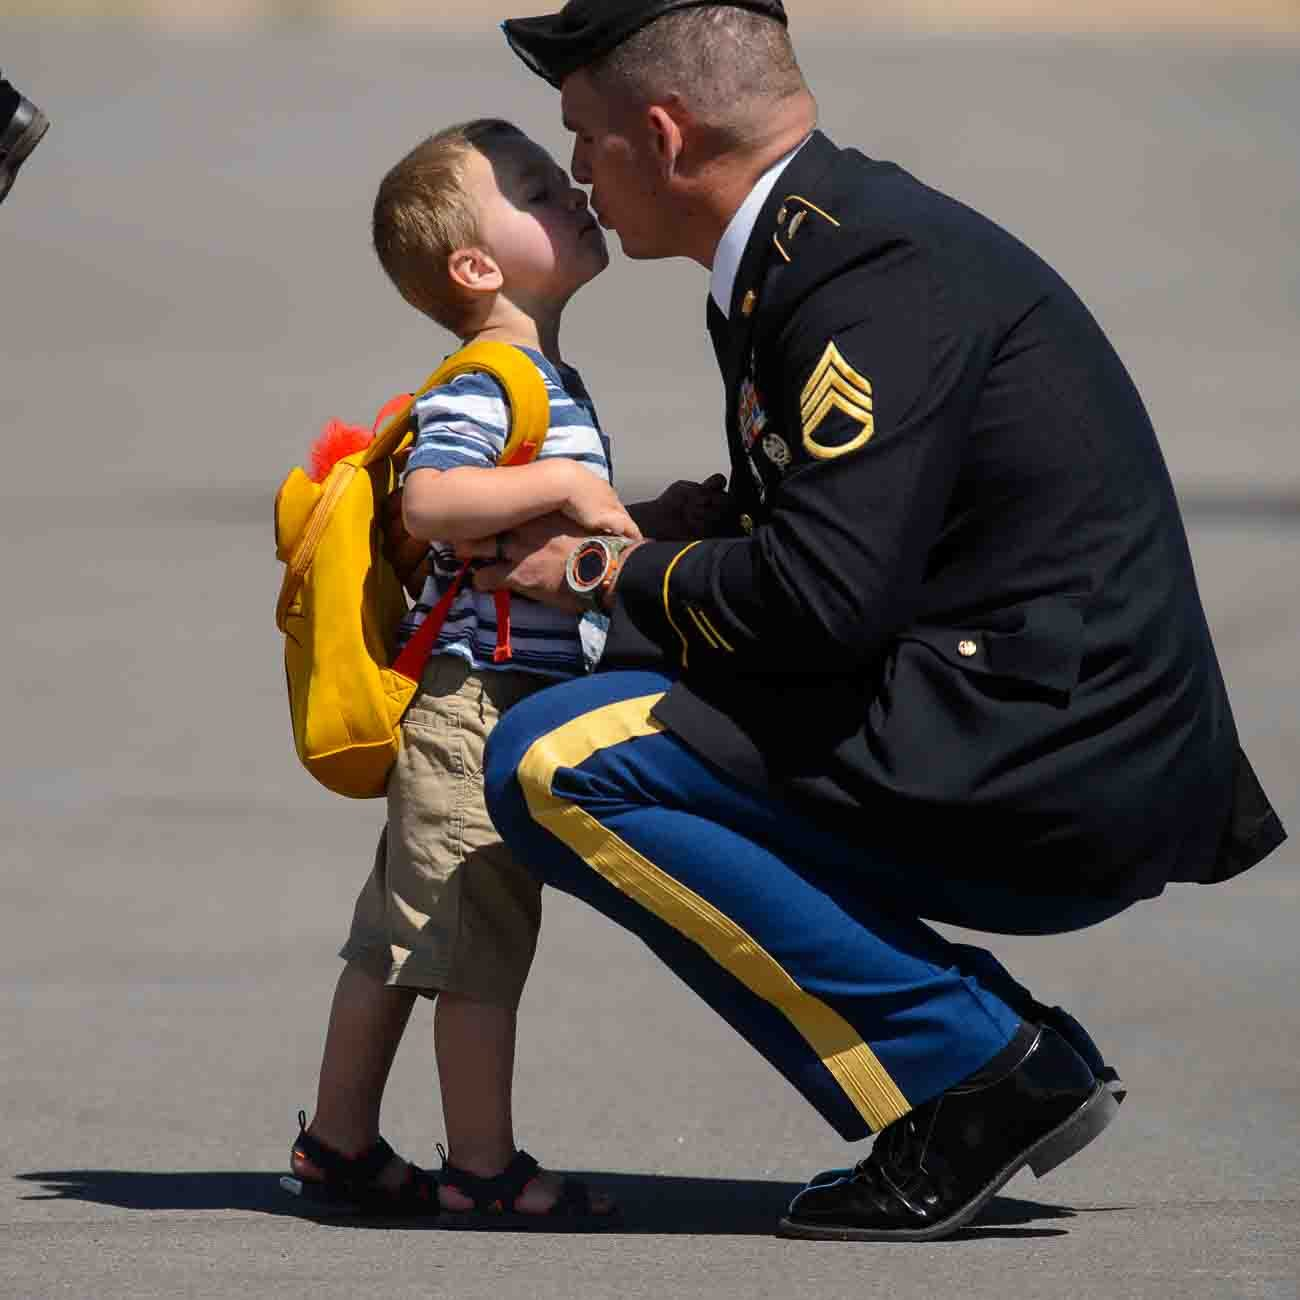 (Trent Nelson | The Salt Lake Tribune) Robert Barton kisses his father, Jesse Barton (cousin of Aaron Butler) while waiting for the arrival the body of fallen soldier Aaron Butler, who was killed last week in Afghanistan, at the Monticello Airport, Thursday August 24, 2017.